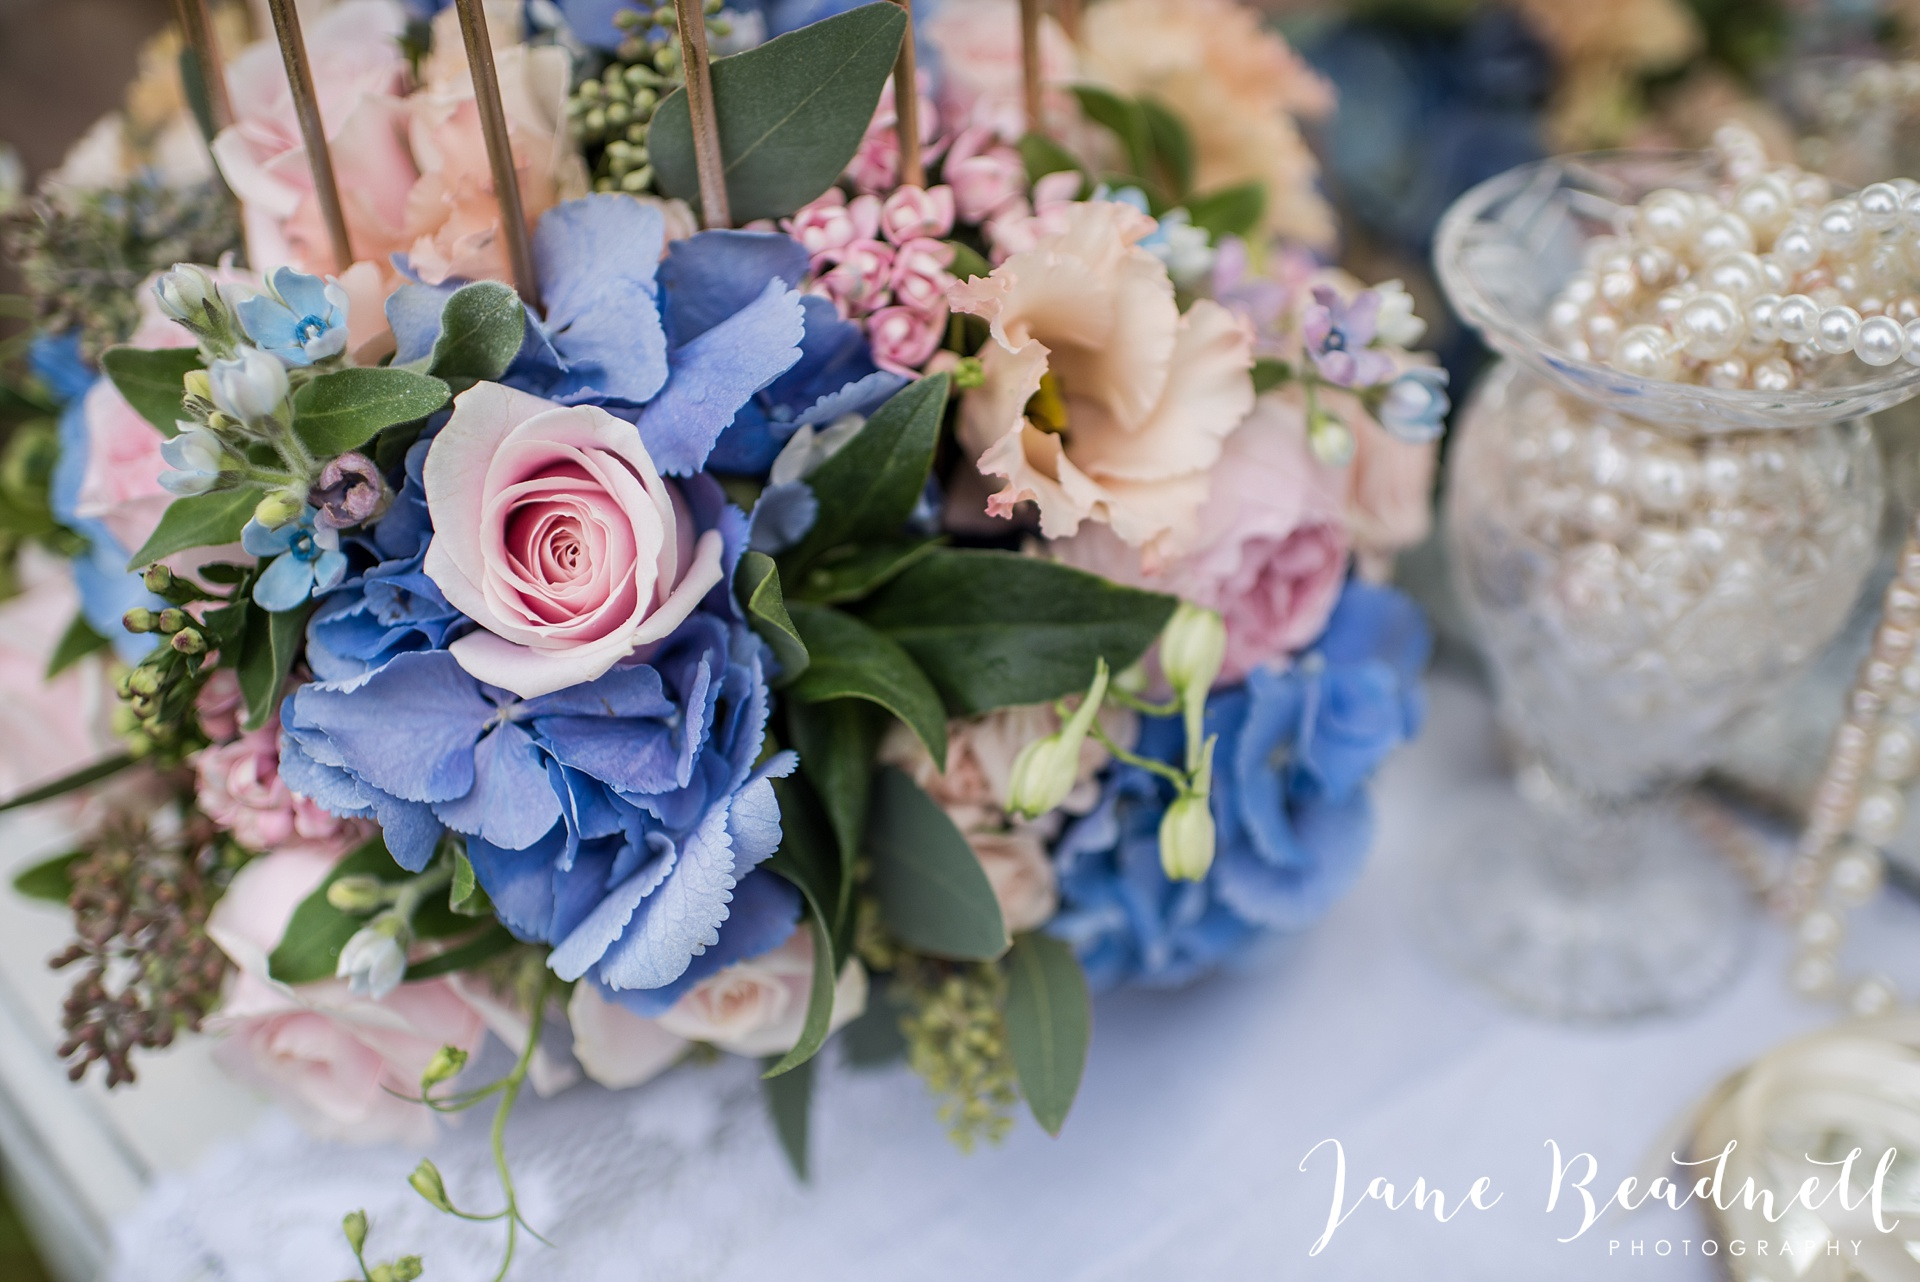 fine-art-wedding-photographer-jane-beadnell-photography-yorkshire-wedding-photographer_0008